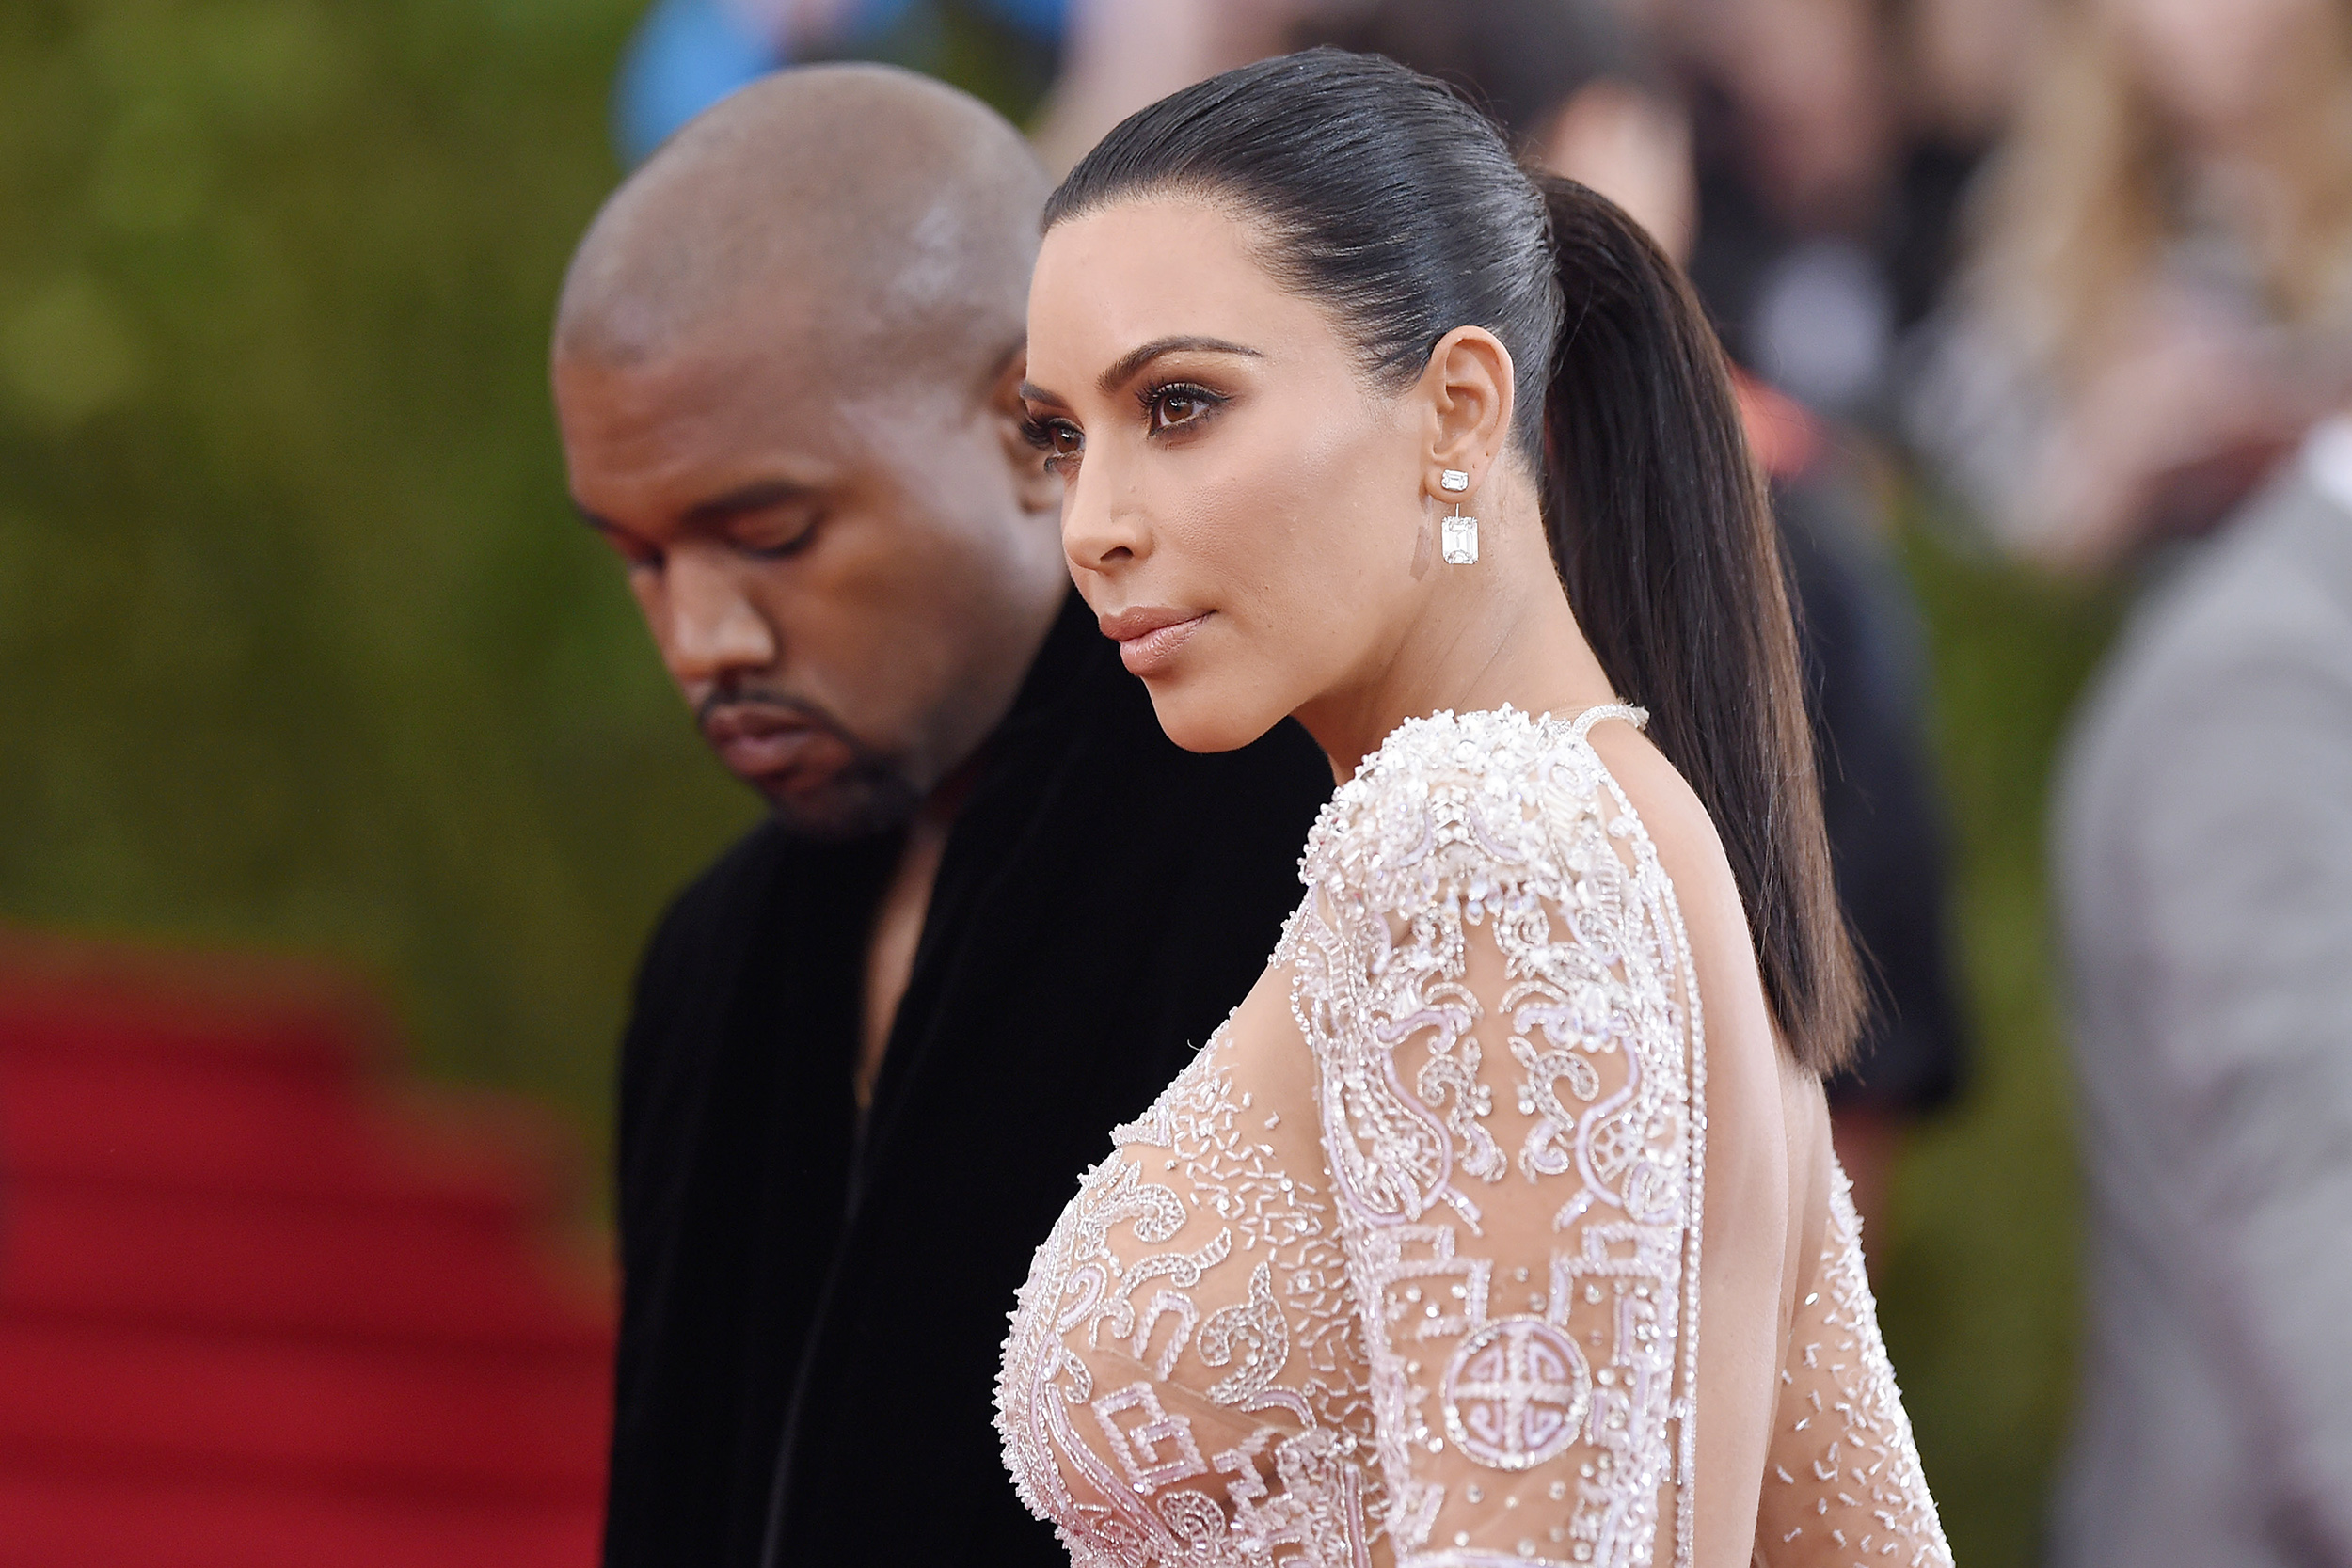 Kim Kardashian files for divorce from Kanye West after nearly seven years of marriage